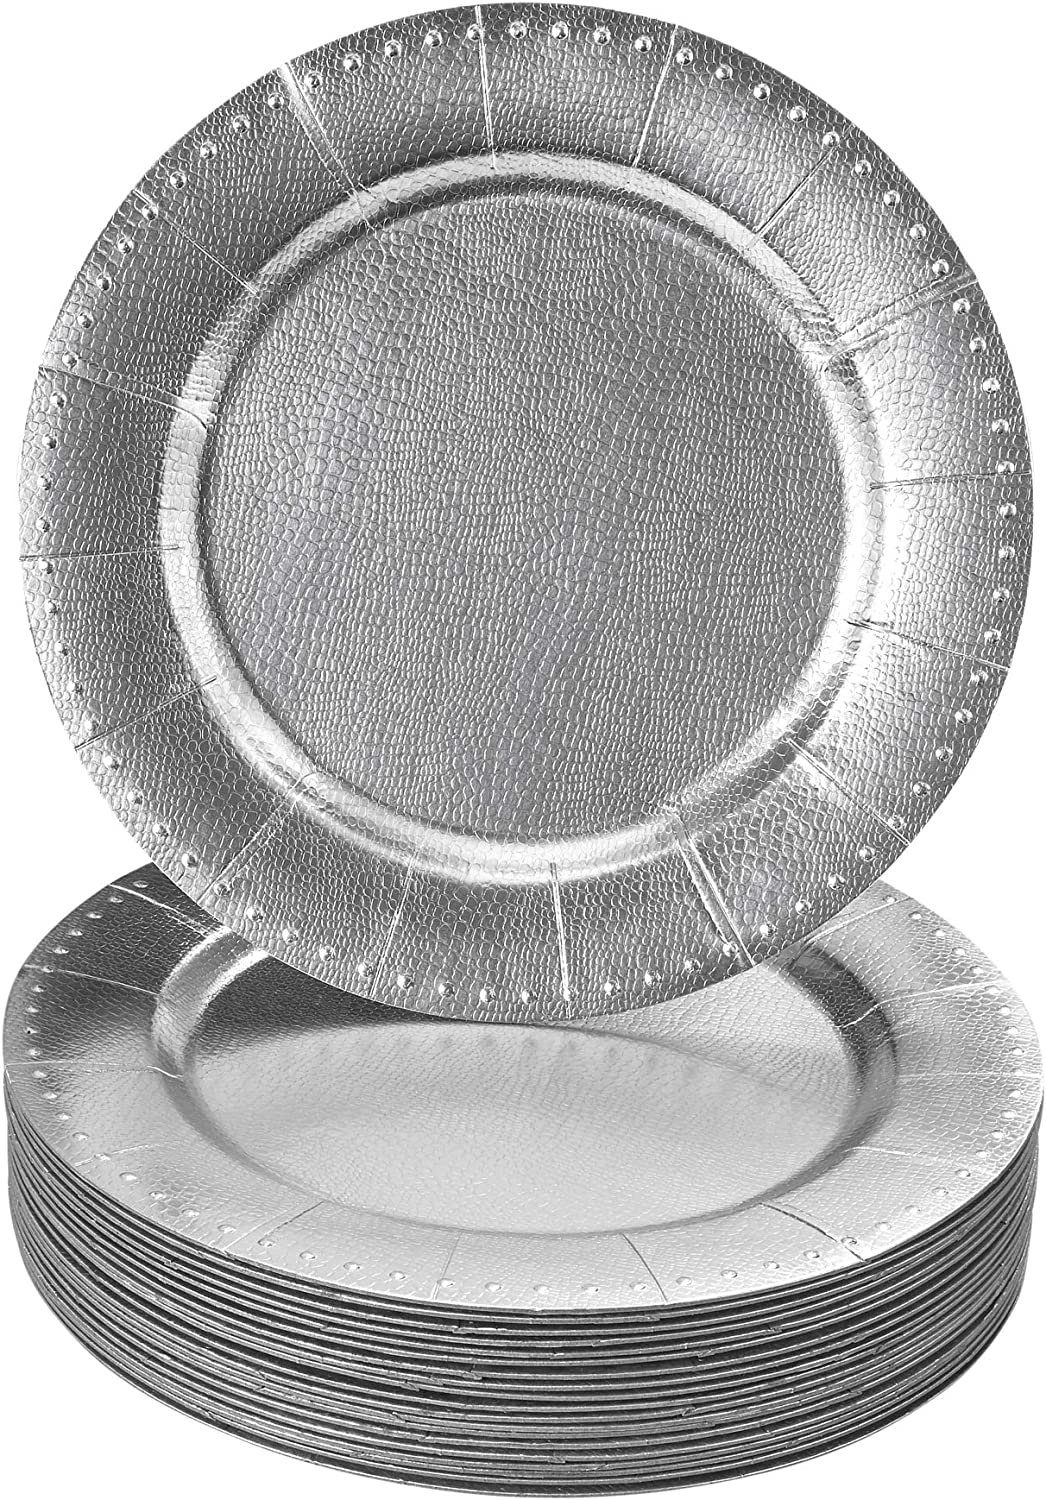 DISPOSABLE ROUND CHARGER PLATES - 40pc (Silver/Beaded)